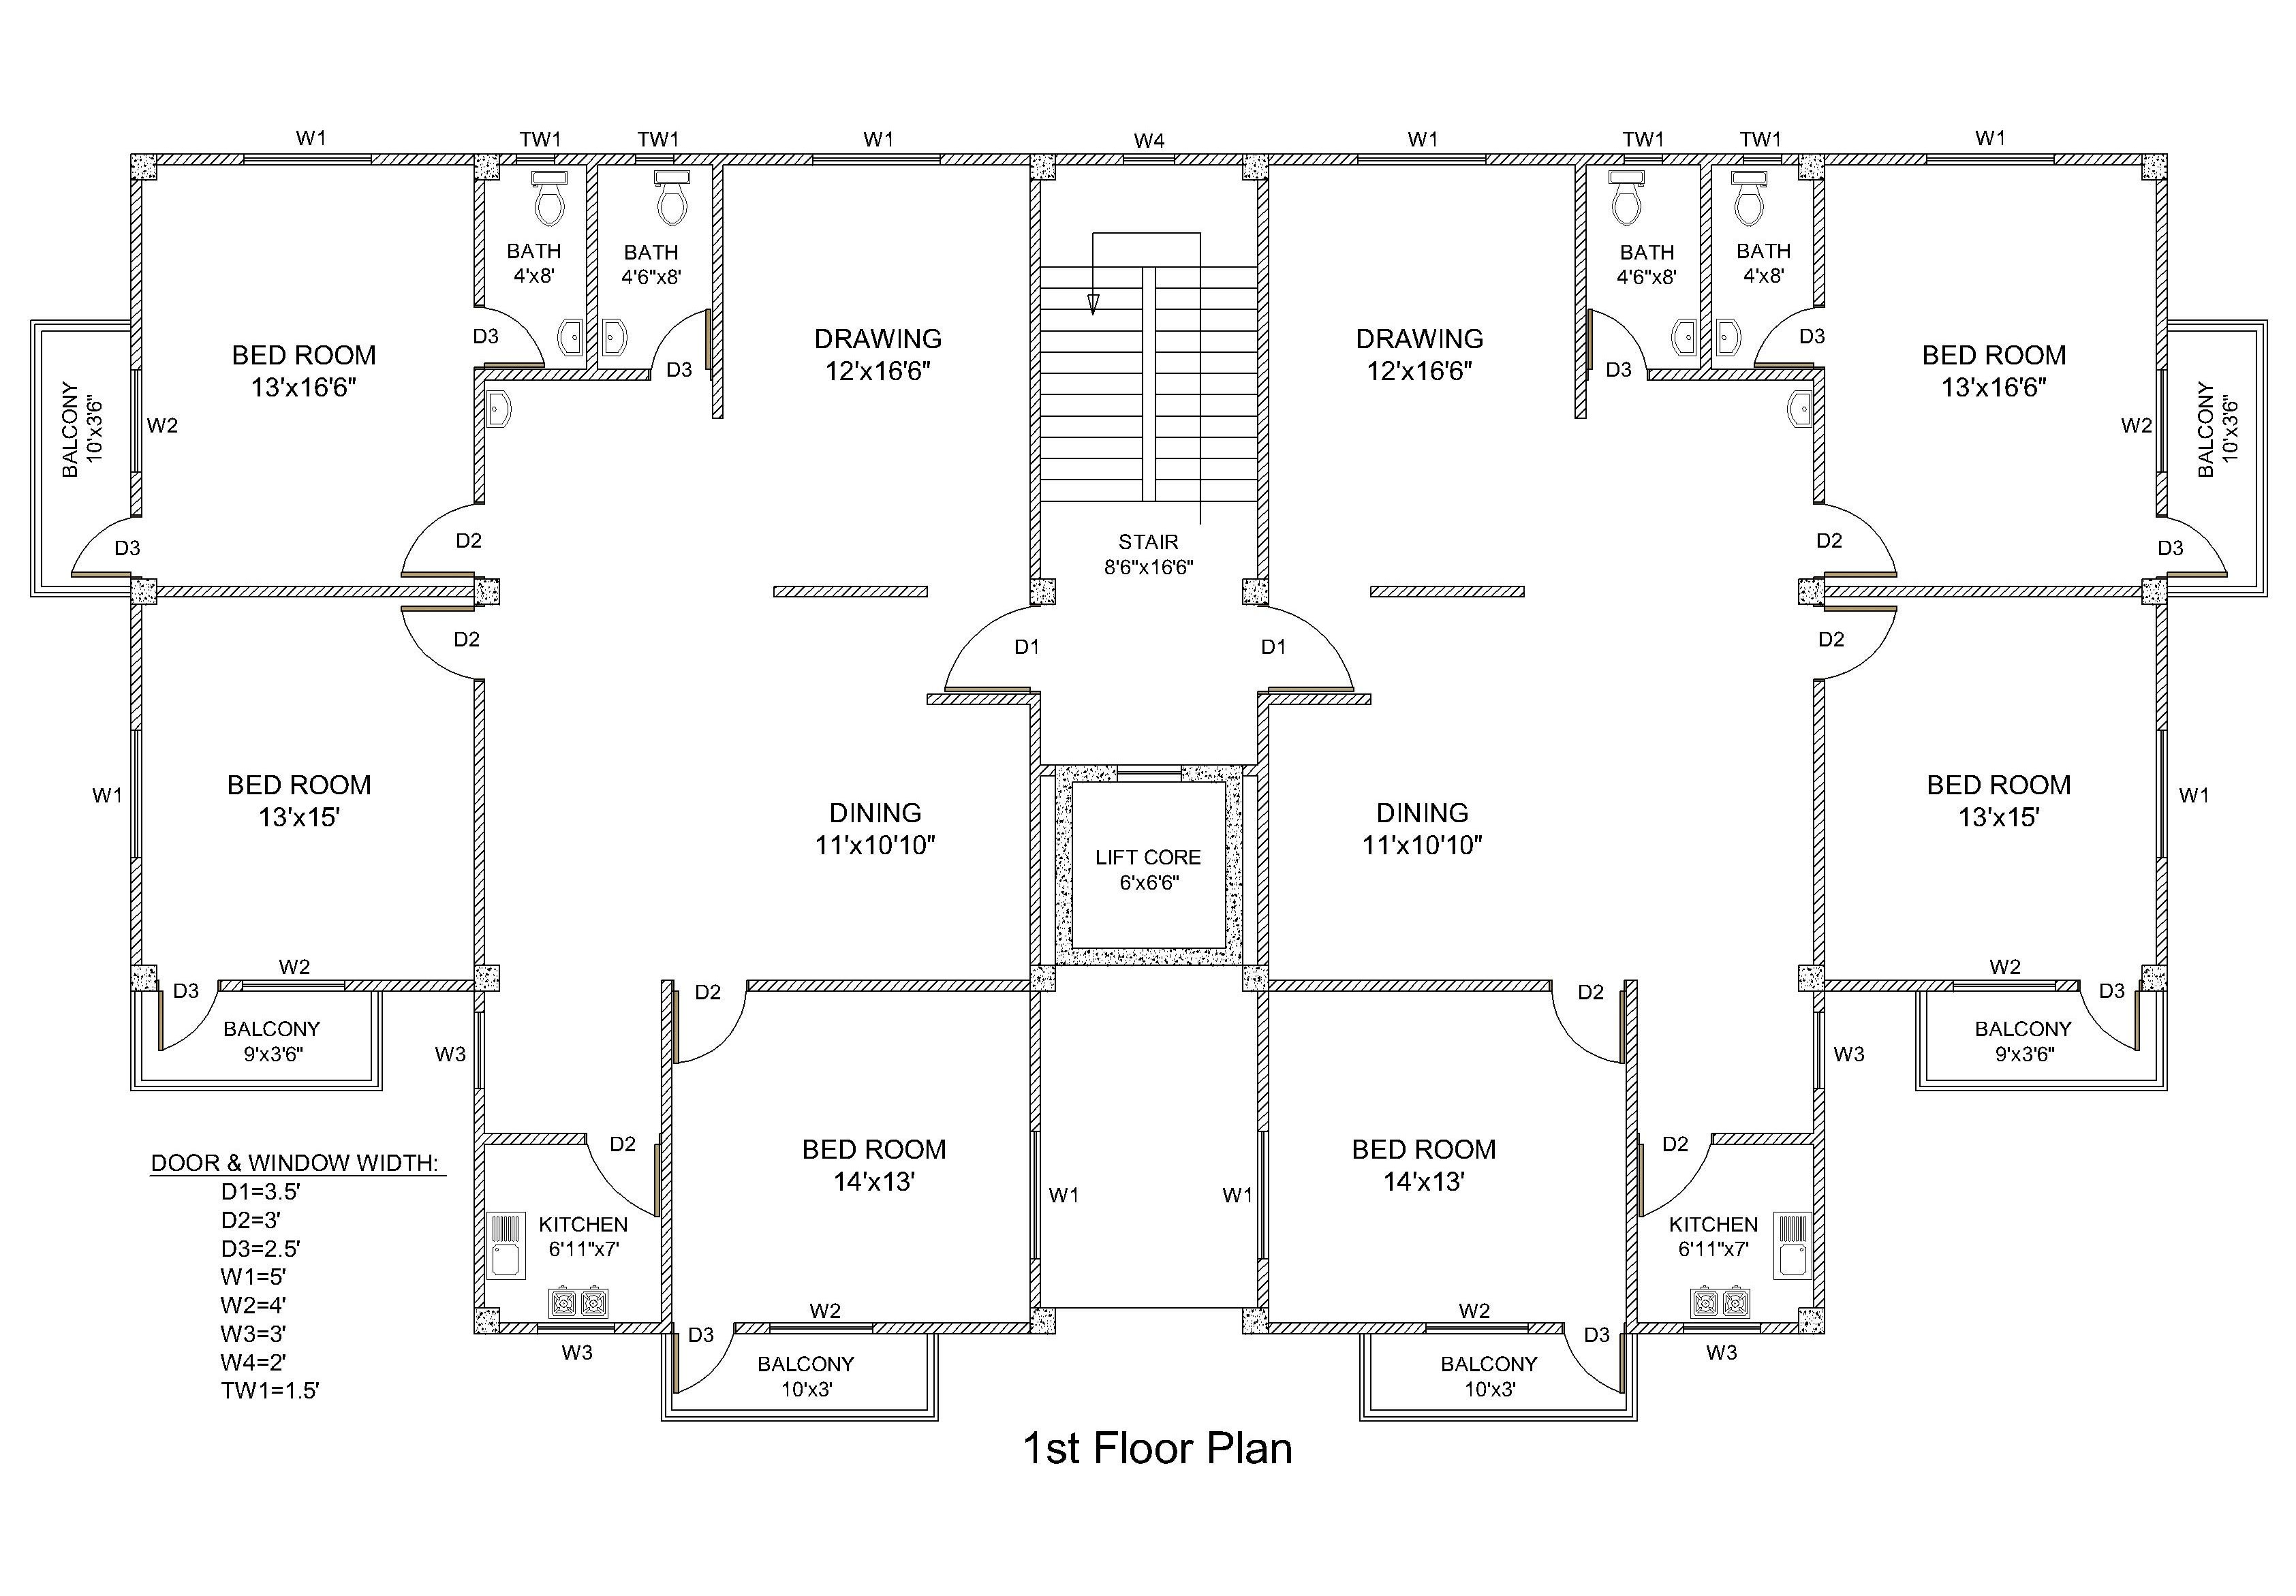 Draw floor plans, any structure